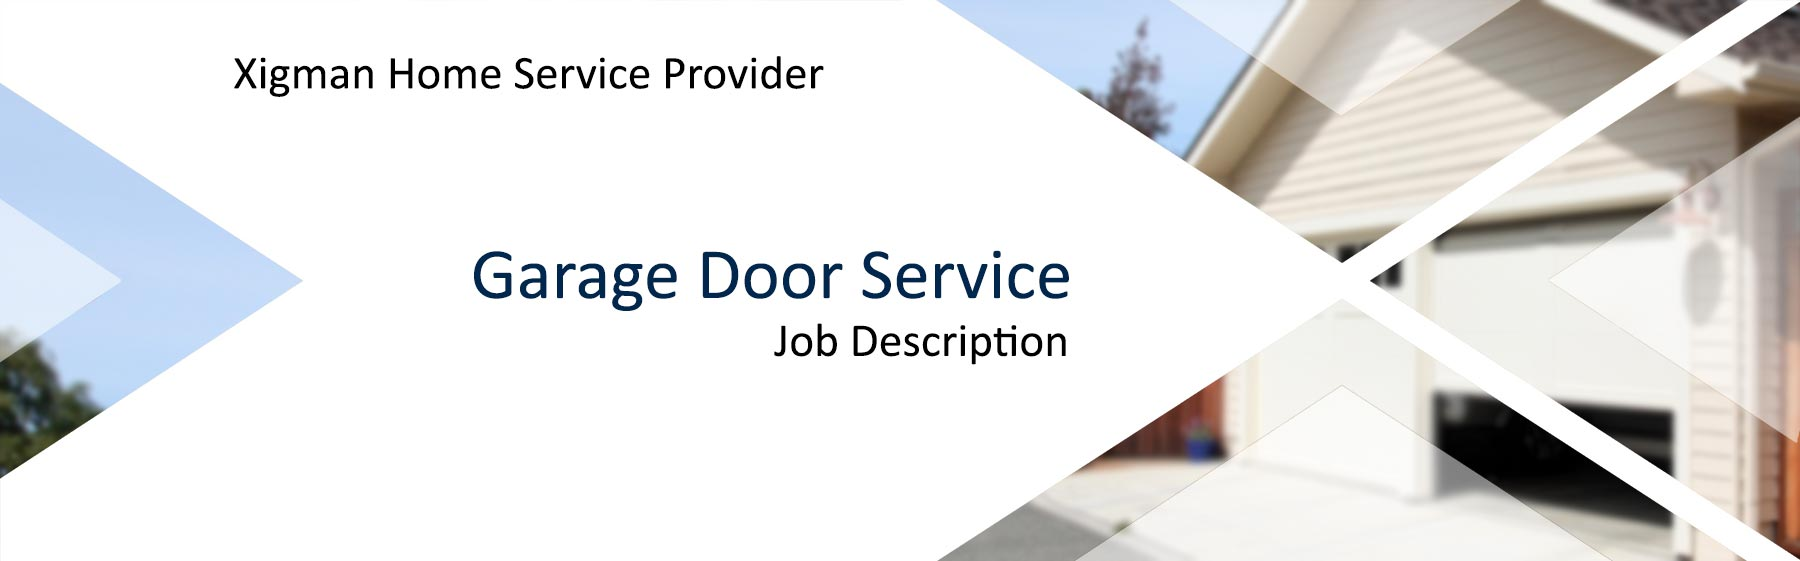 garage-door-job-description-header